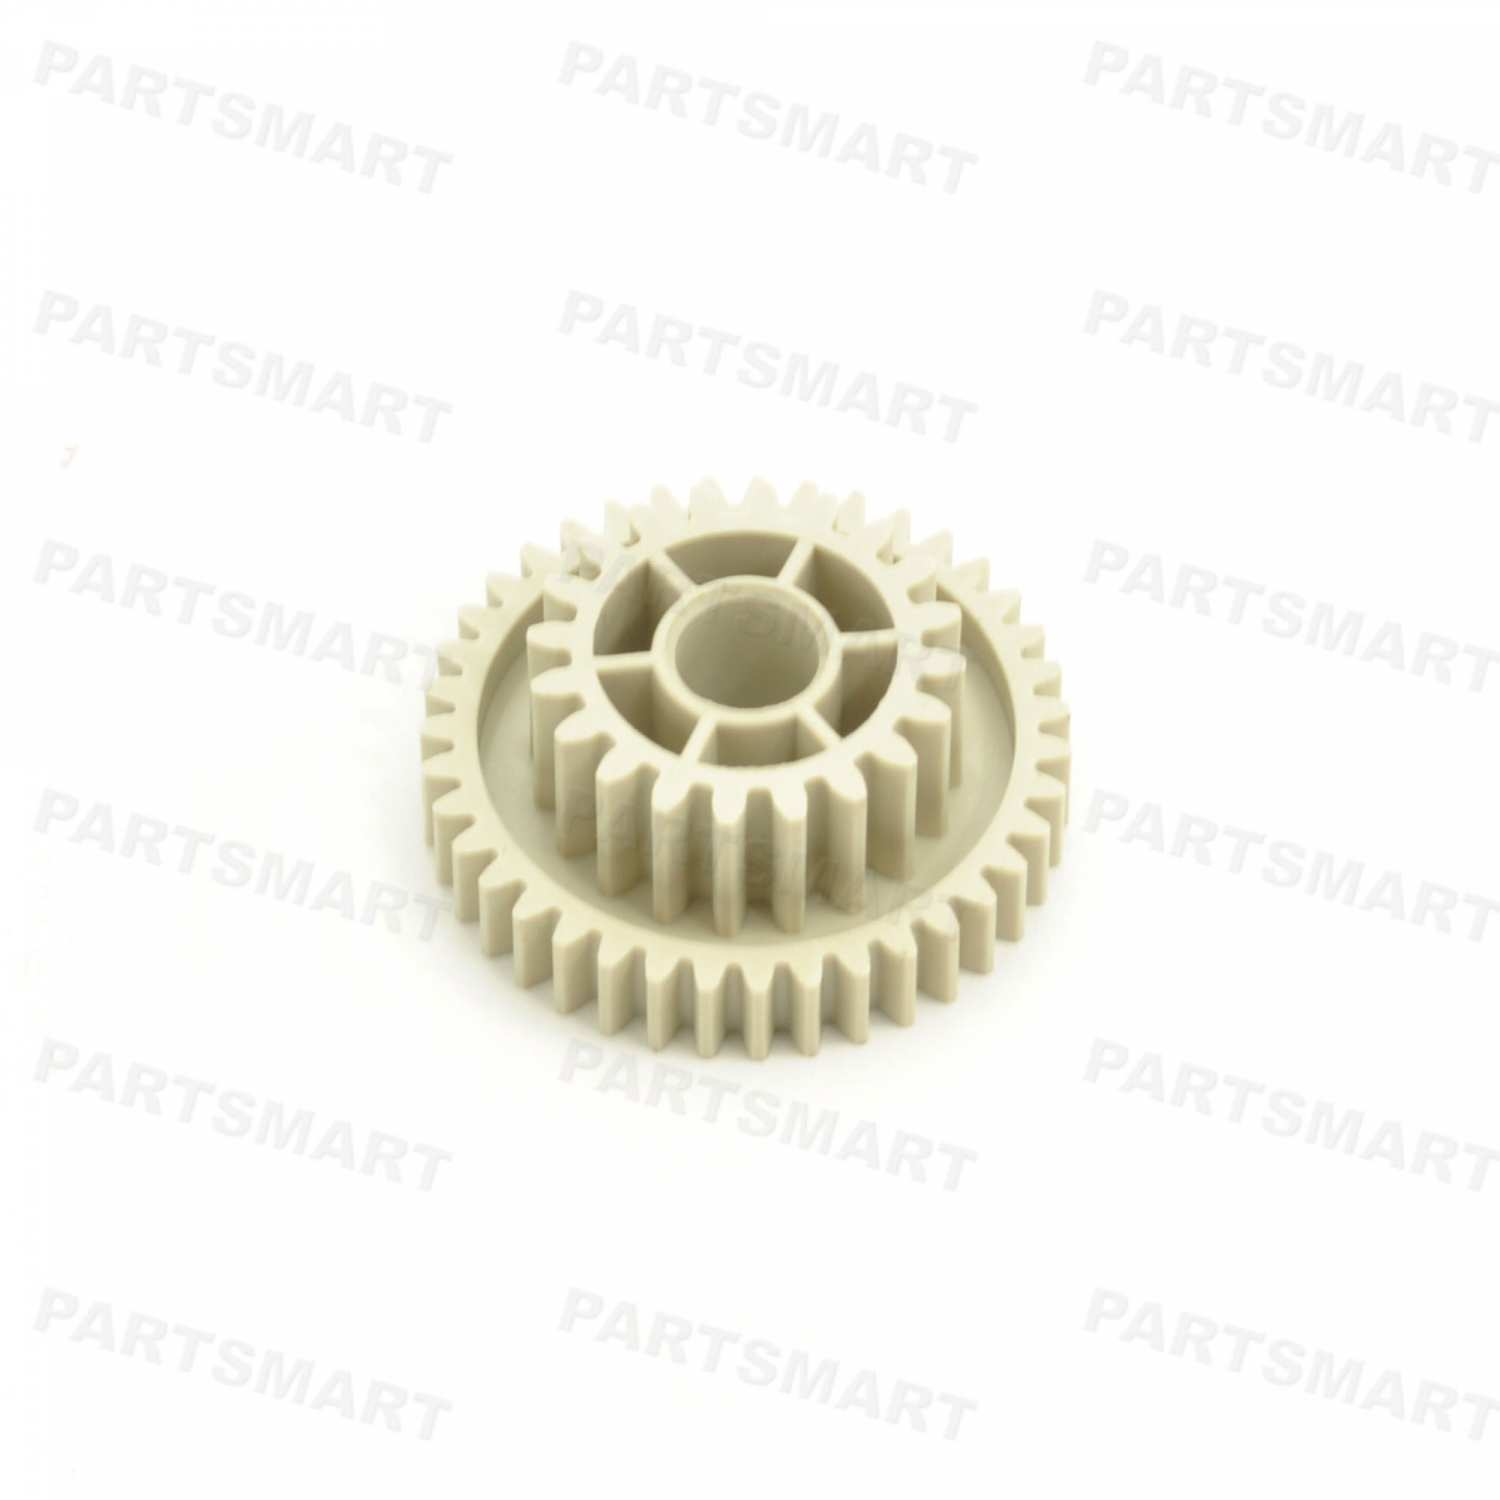 LY4193 Fuser Gear (39T/20T) for Brother HL-5590DN